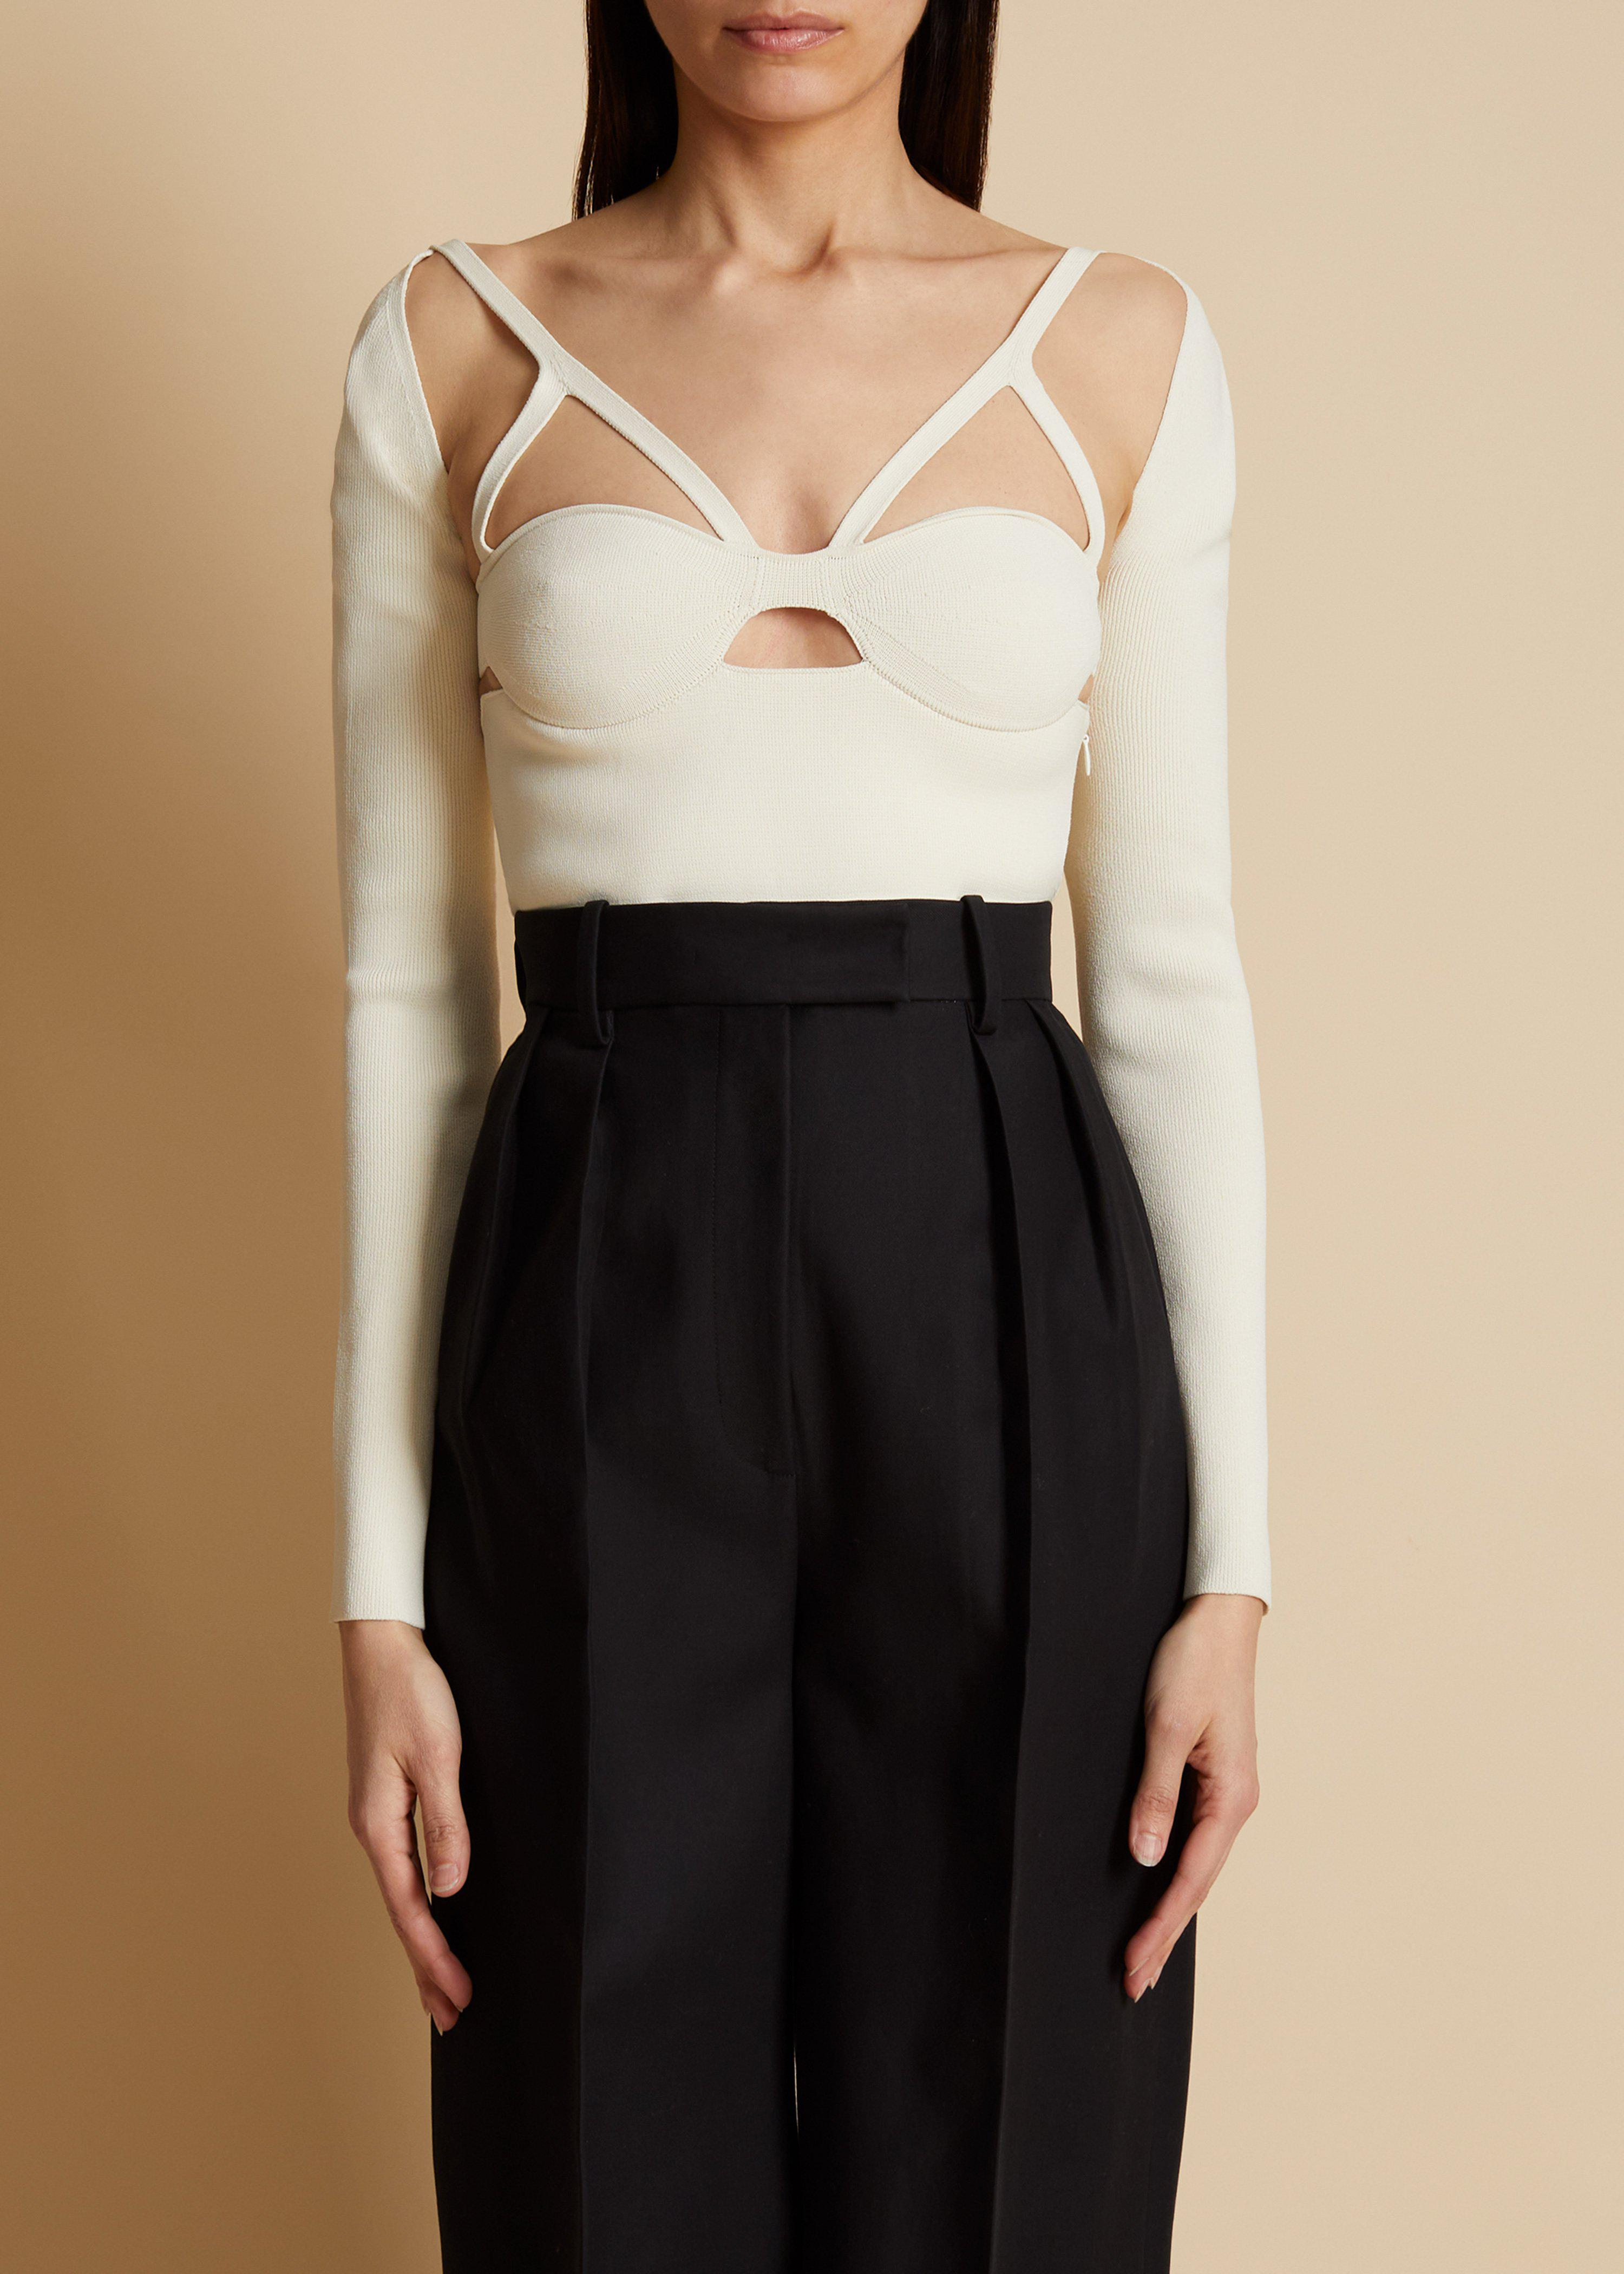 The Roza Top in Ivory